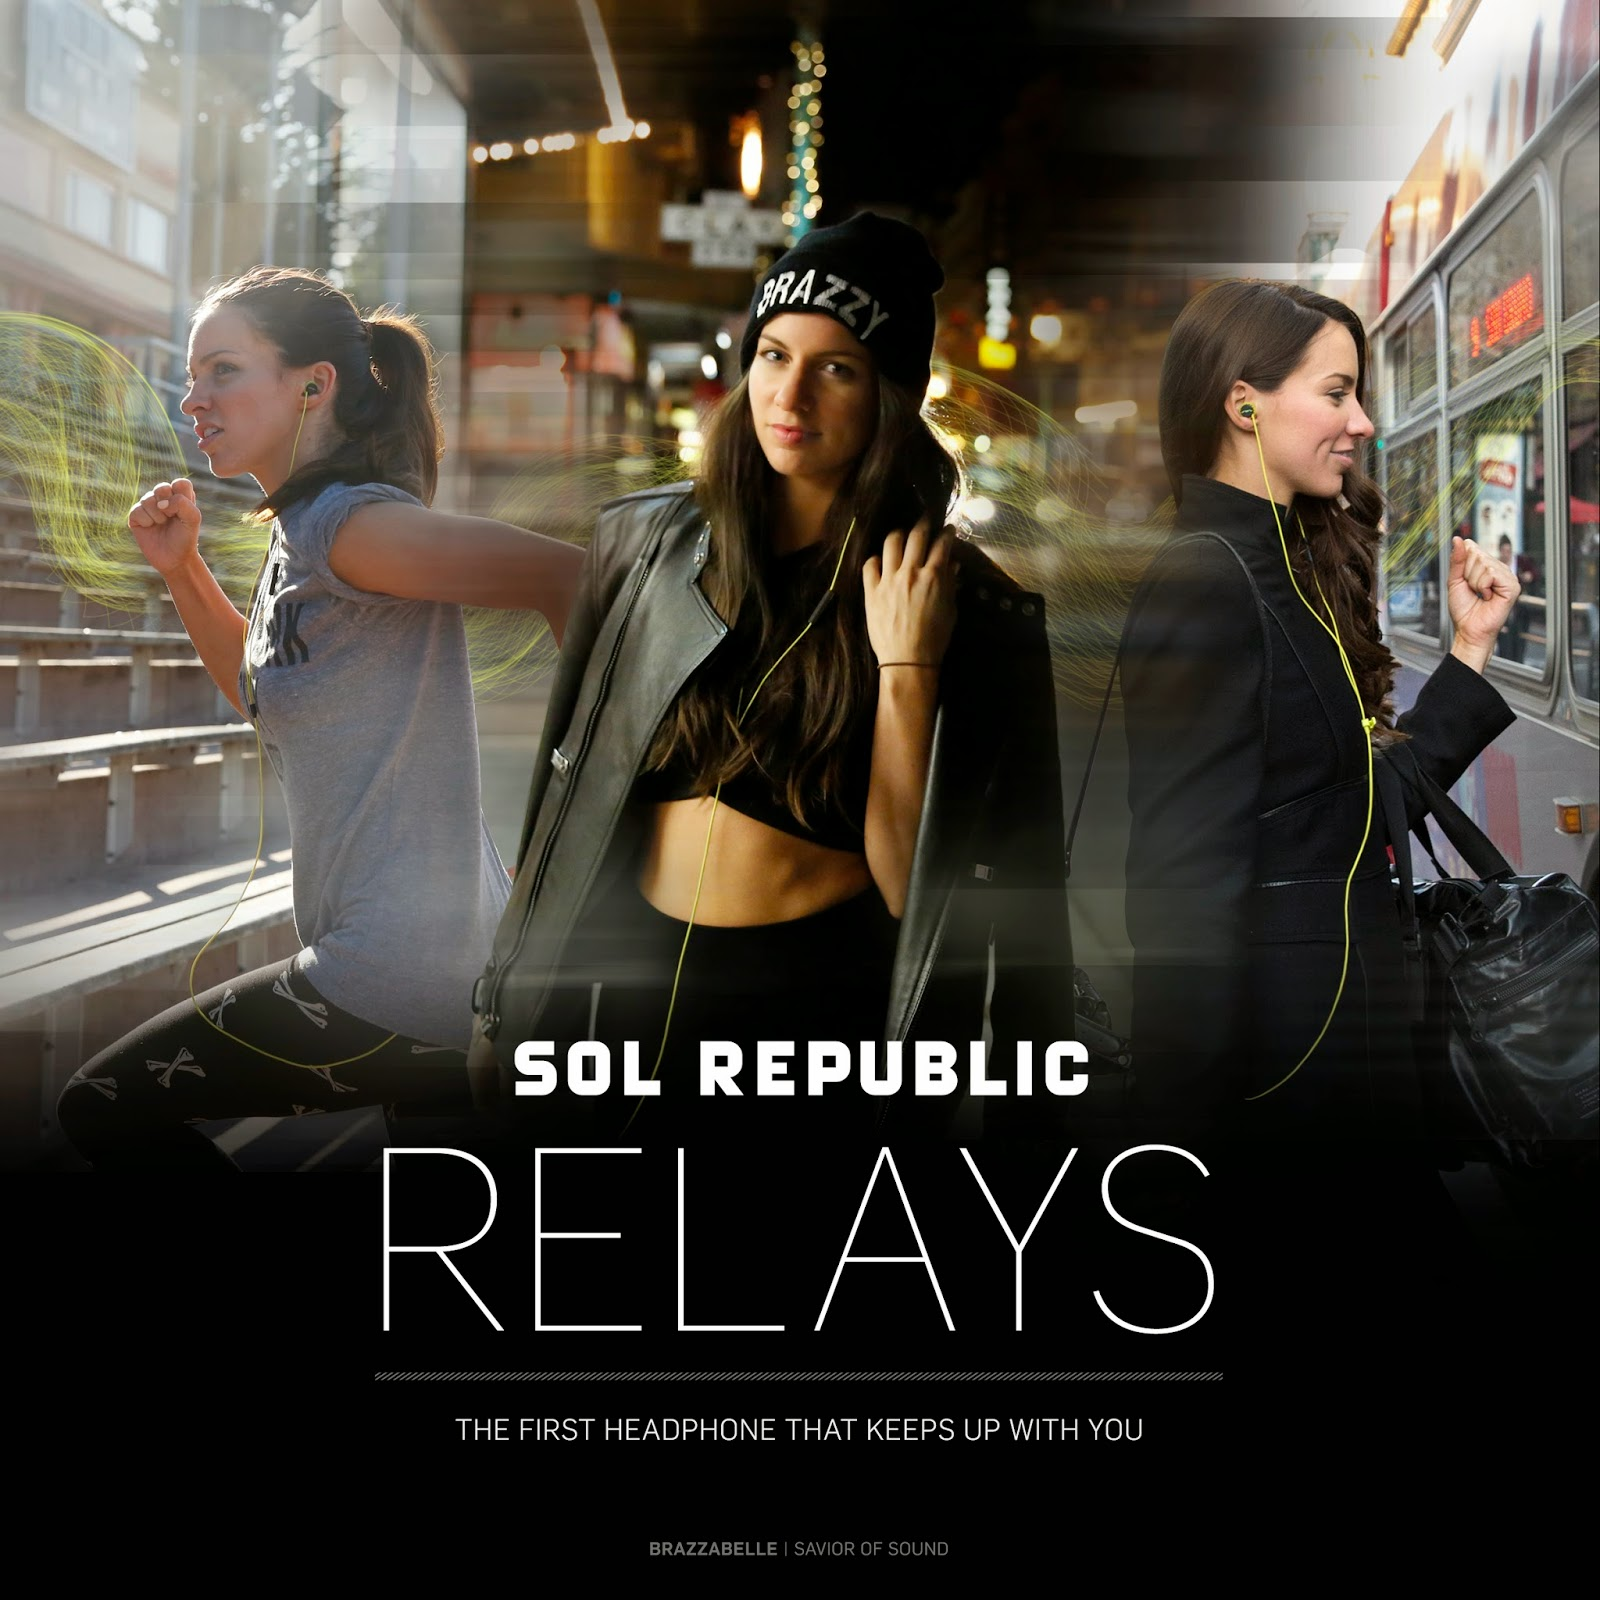 Sol Republic RELAYS